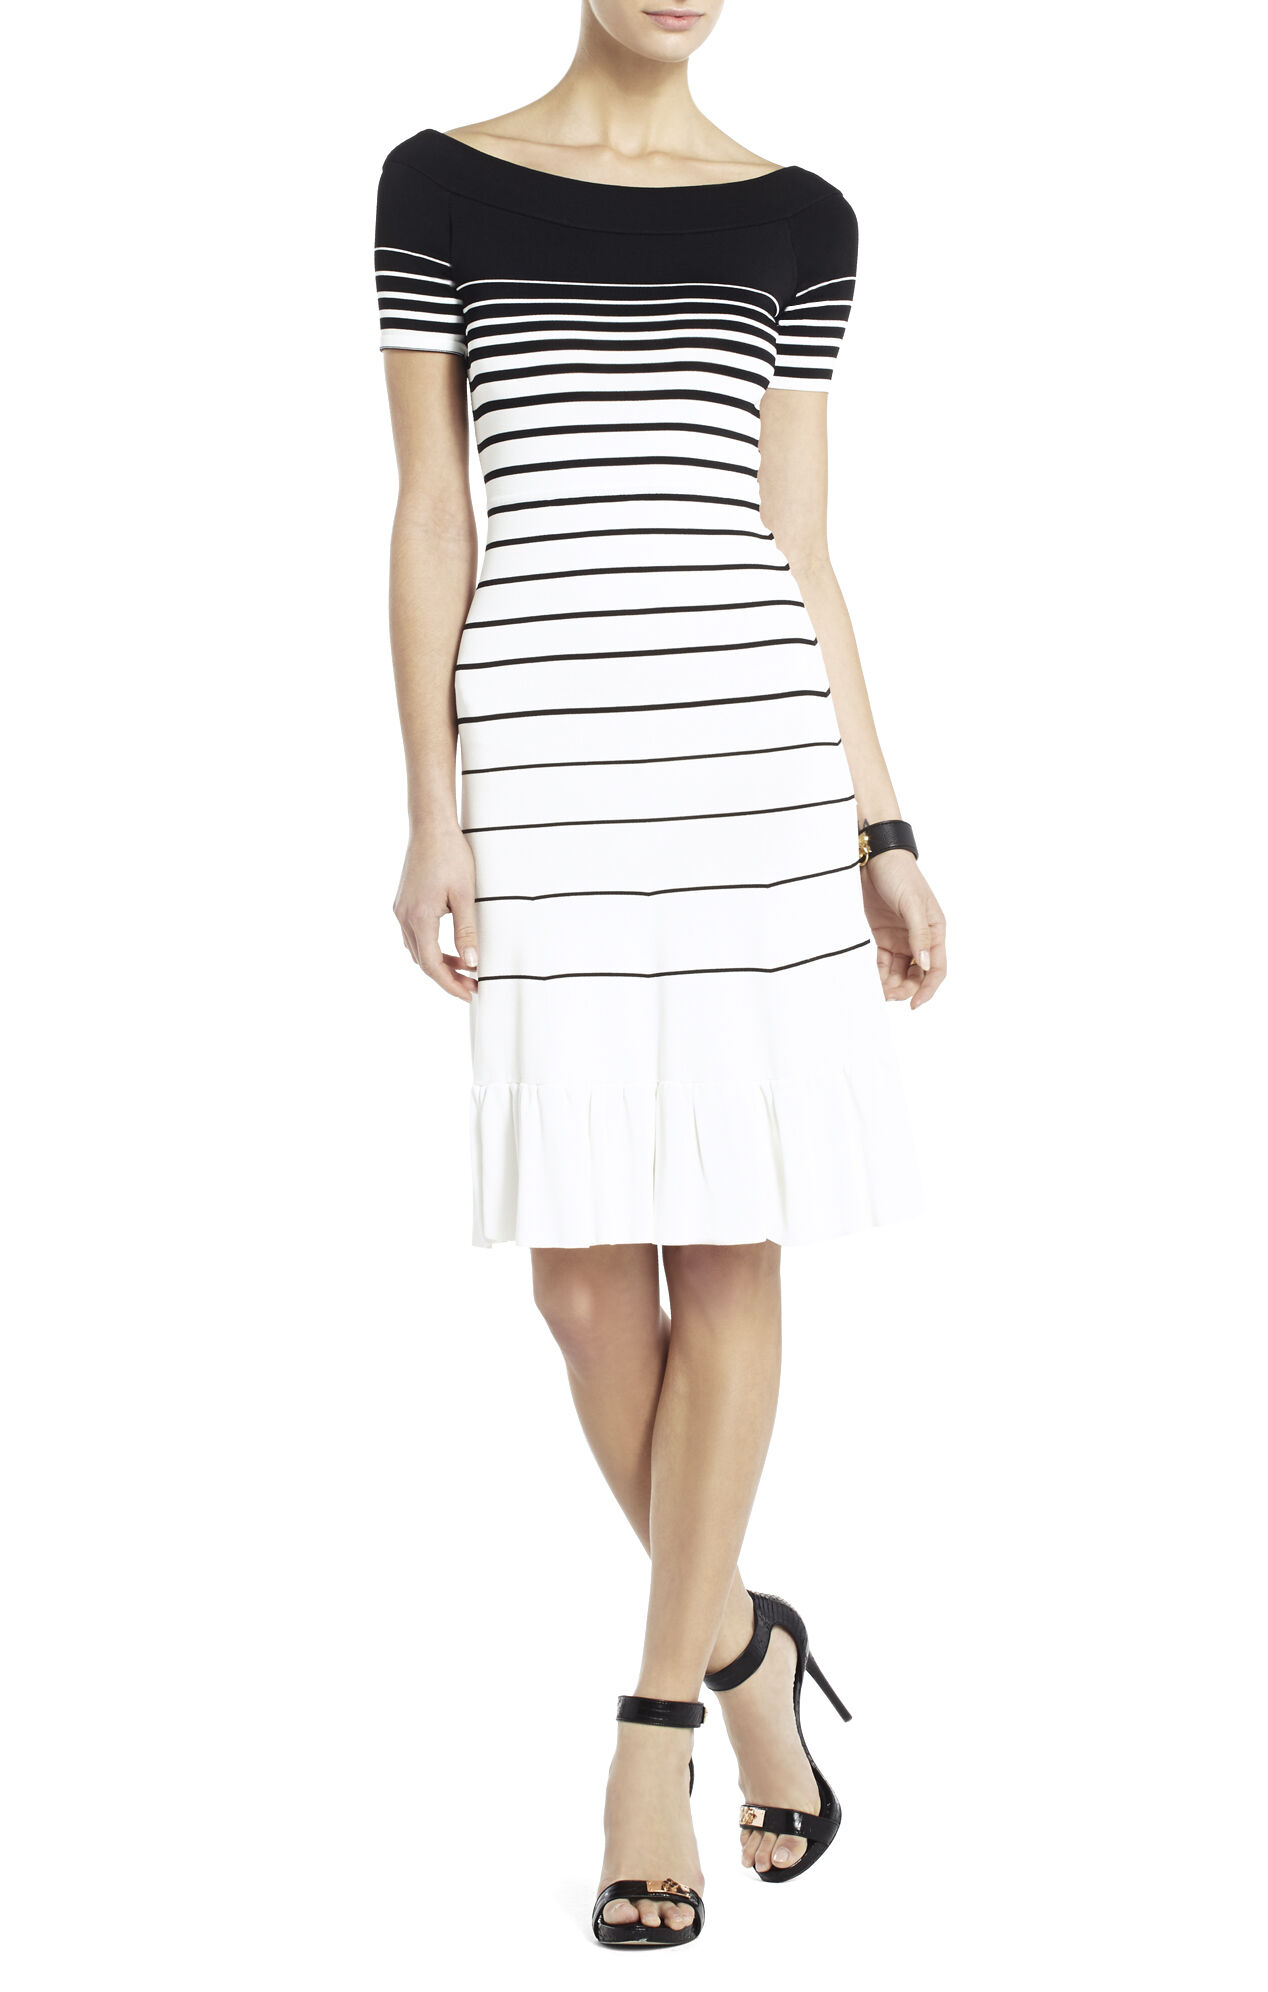 Agnese Gradient Stripe Dress